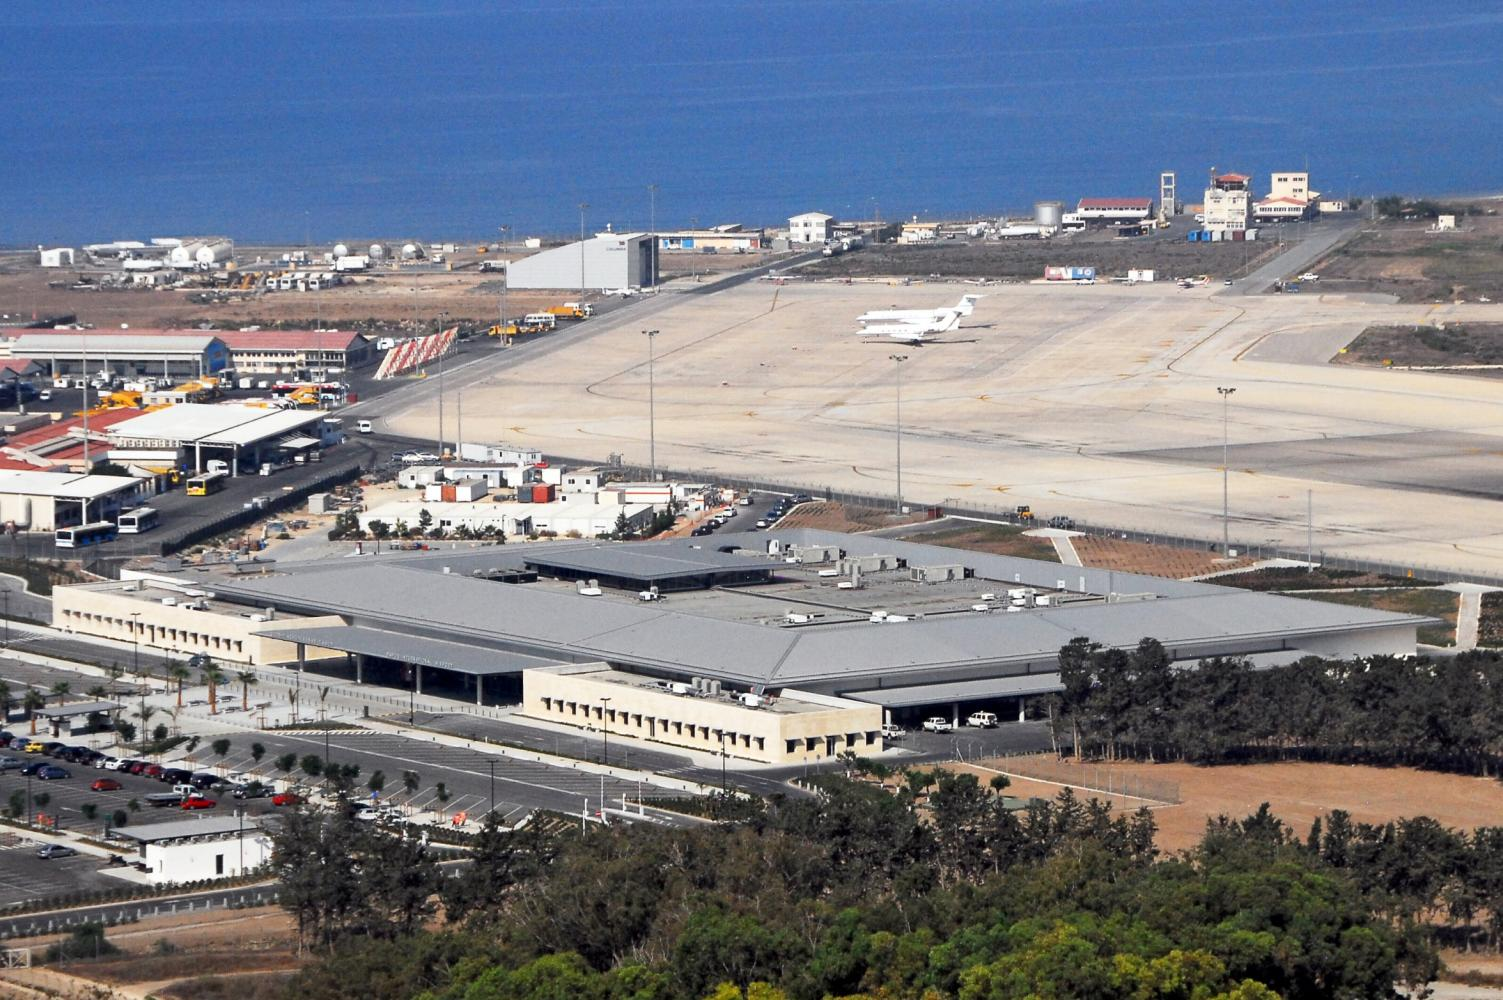 Pafos International Airport